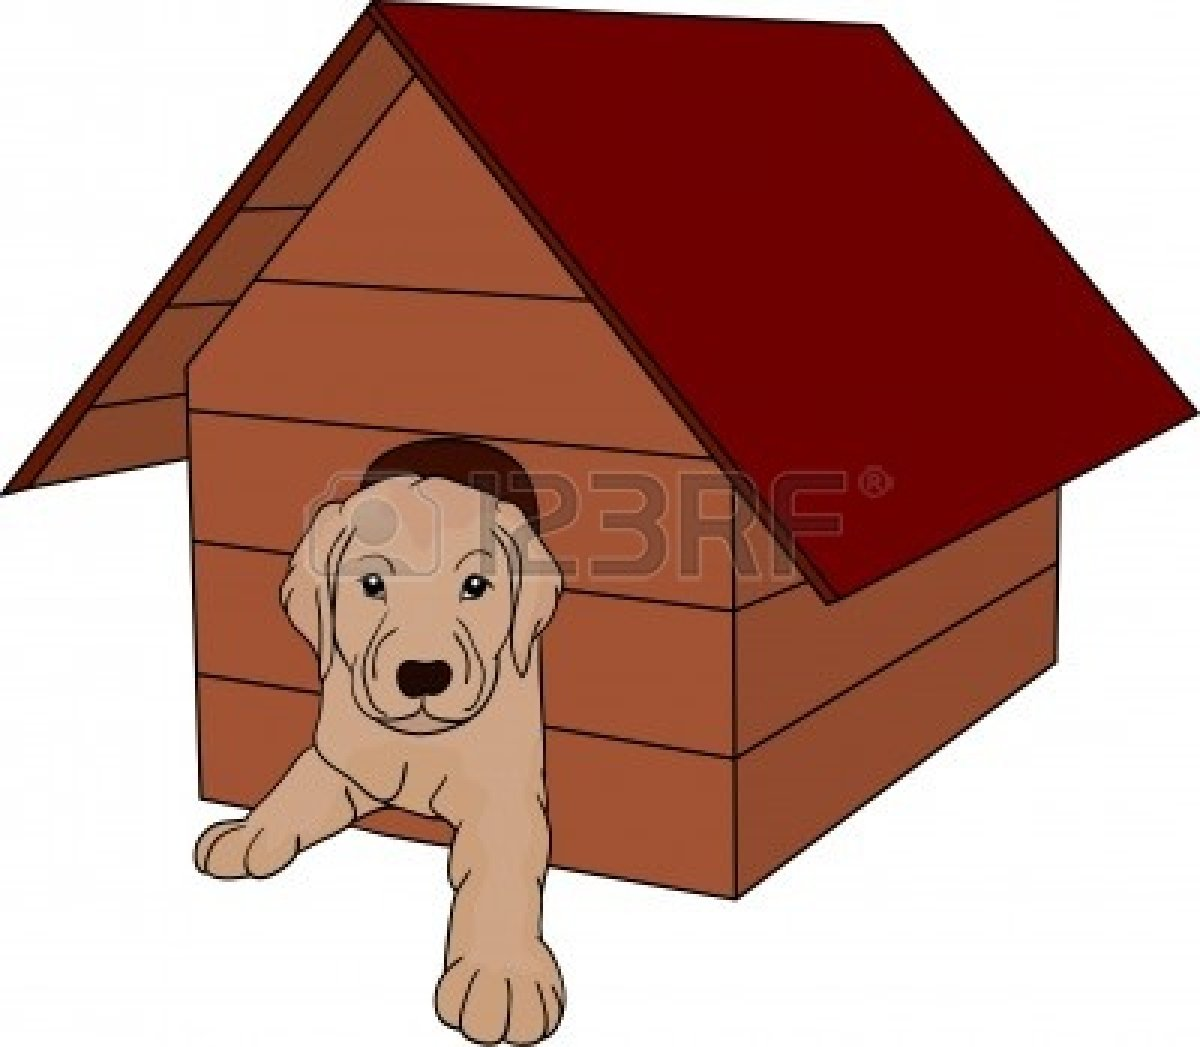 on clipart dog toy clipart panda free clipart images rh clipartpanda com  dog house clip art free